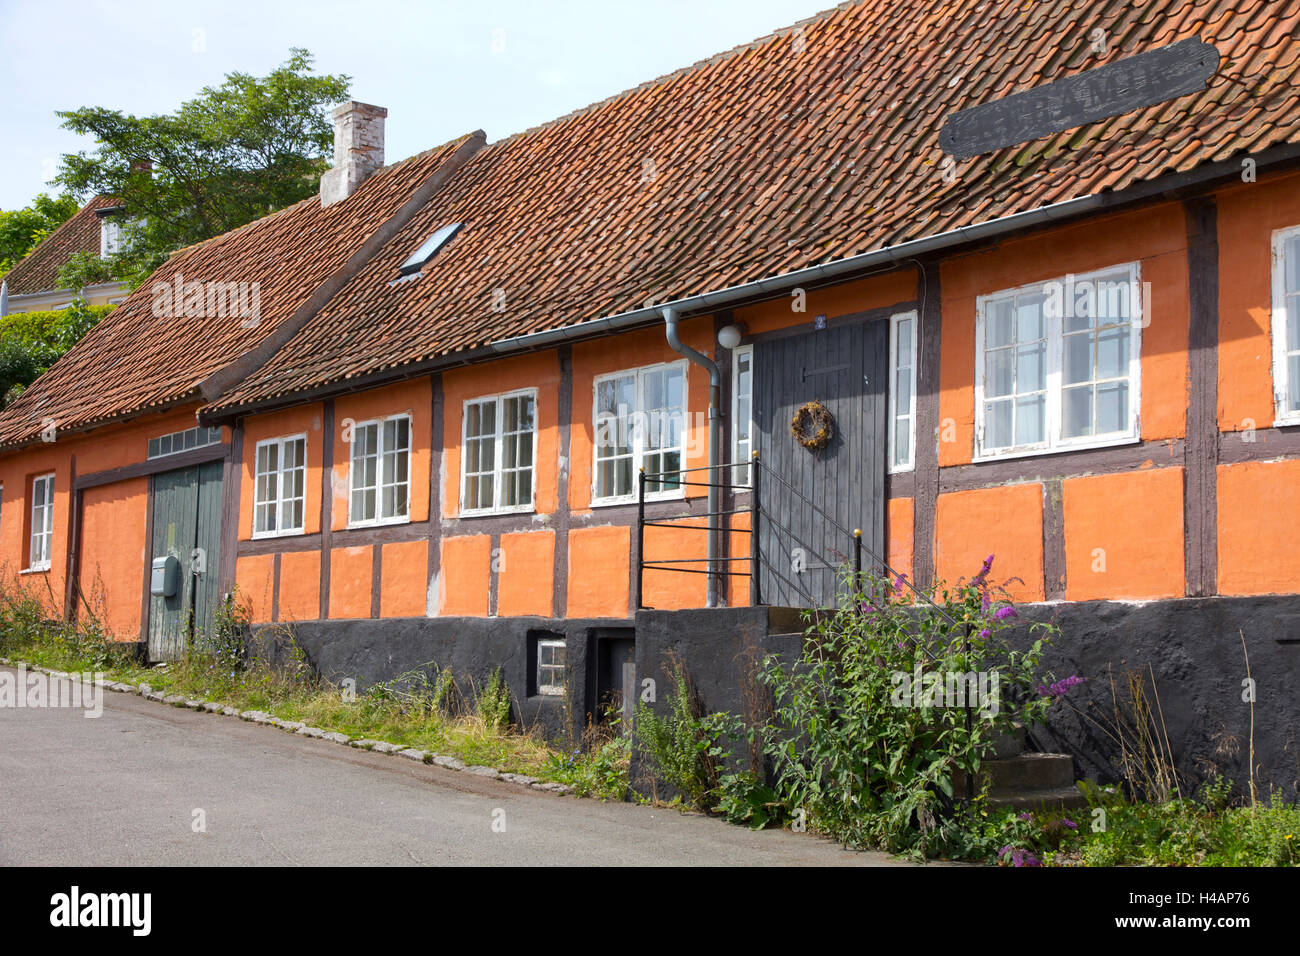 Colorful tiled roof shops and houses characterize the coastal village of Svaneke on the Danish island of Bornholm. Stock Photo